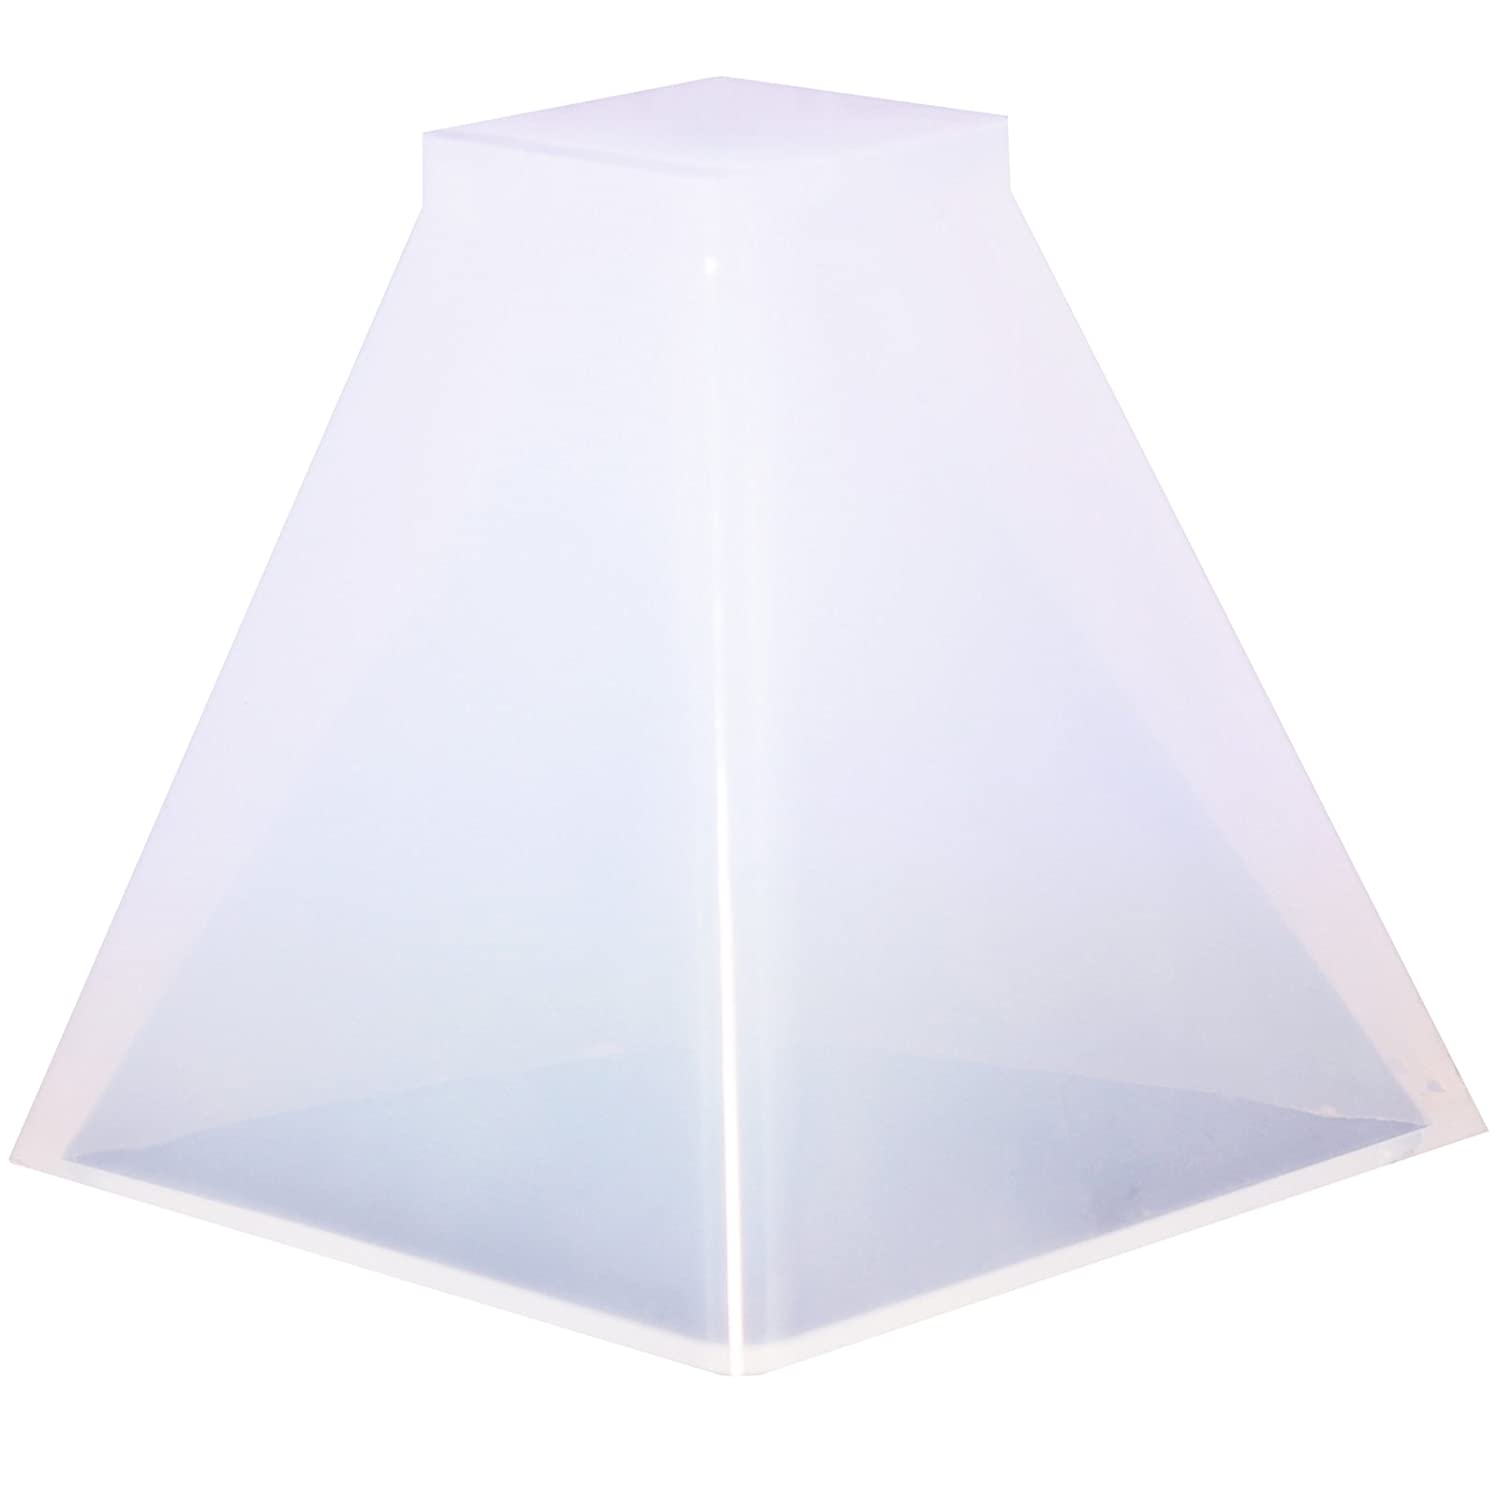 Funshowcase Pyramid Resin Epoxy Mold for Jewelry, Polymer Clay, Soap Making, Cabochon Gemstone Crafting Projects